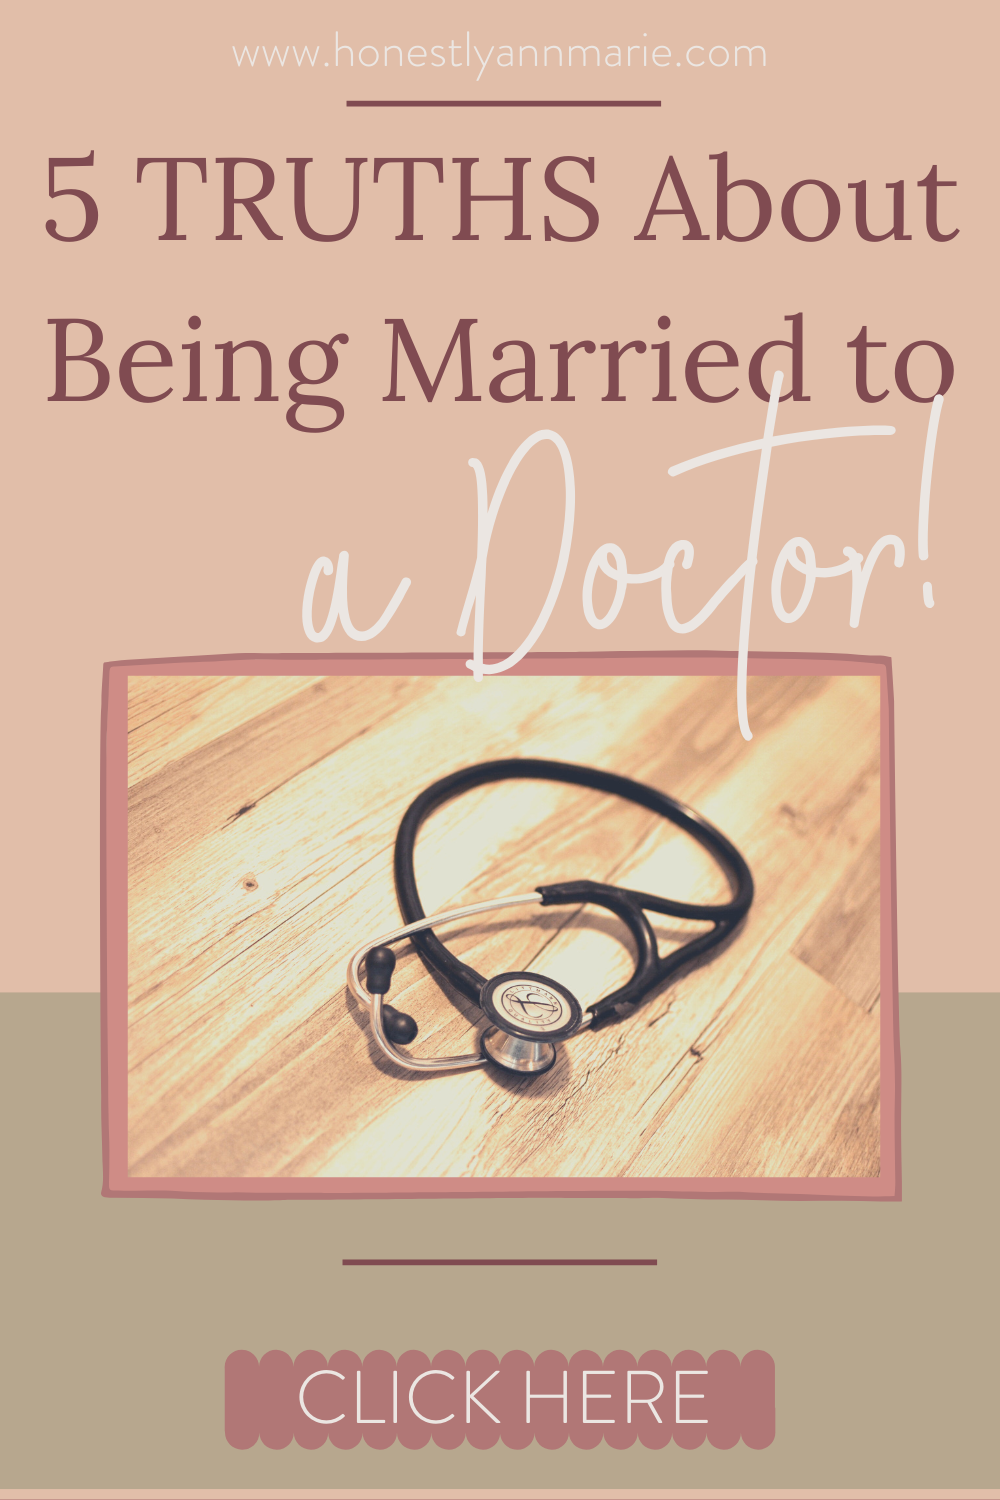 Think you want to be married to a doctor, too? Being married to a doctor comes with some perks, and also some interesting realizations about this particular